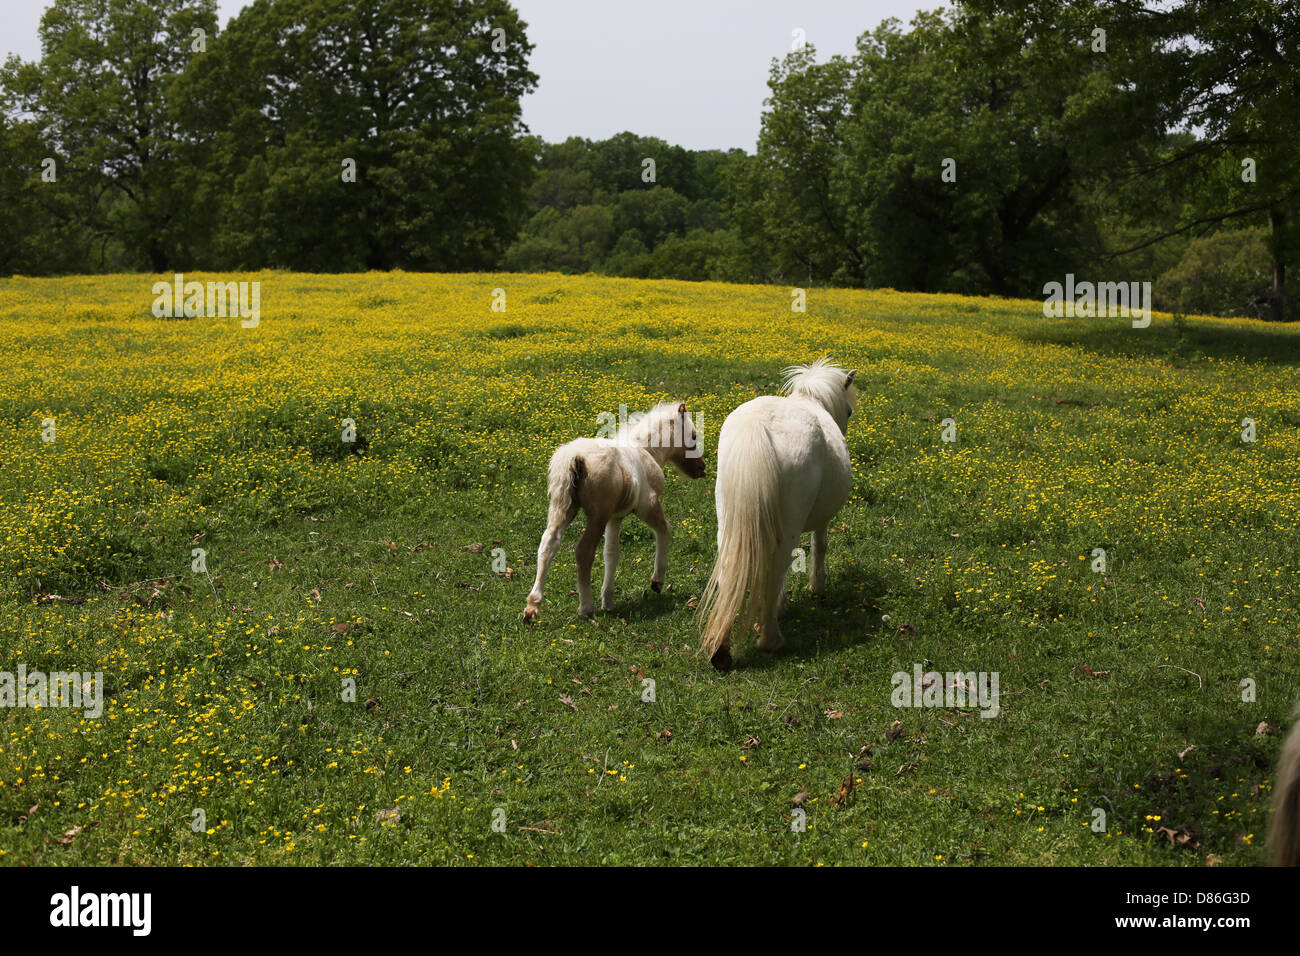 Page 9 Miniature Horse High Resolution Stock Photography And Images Alamy